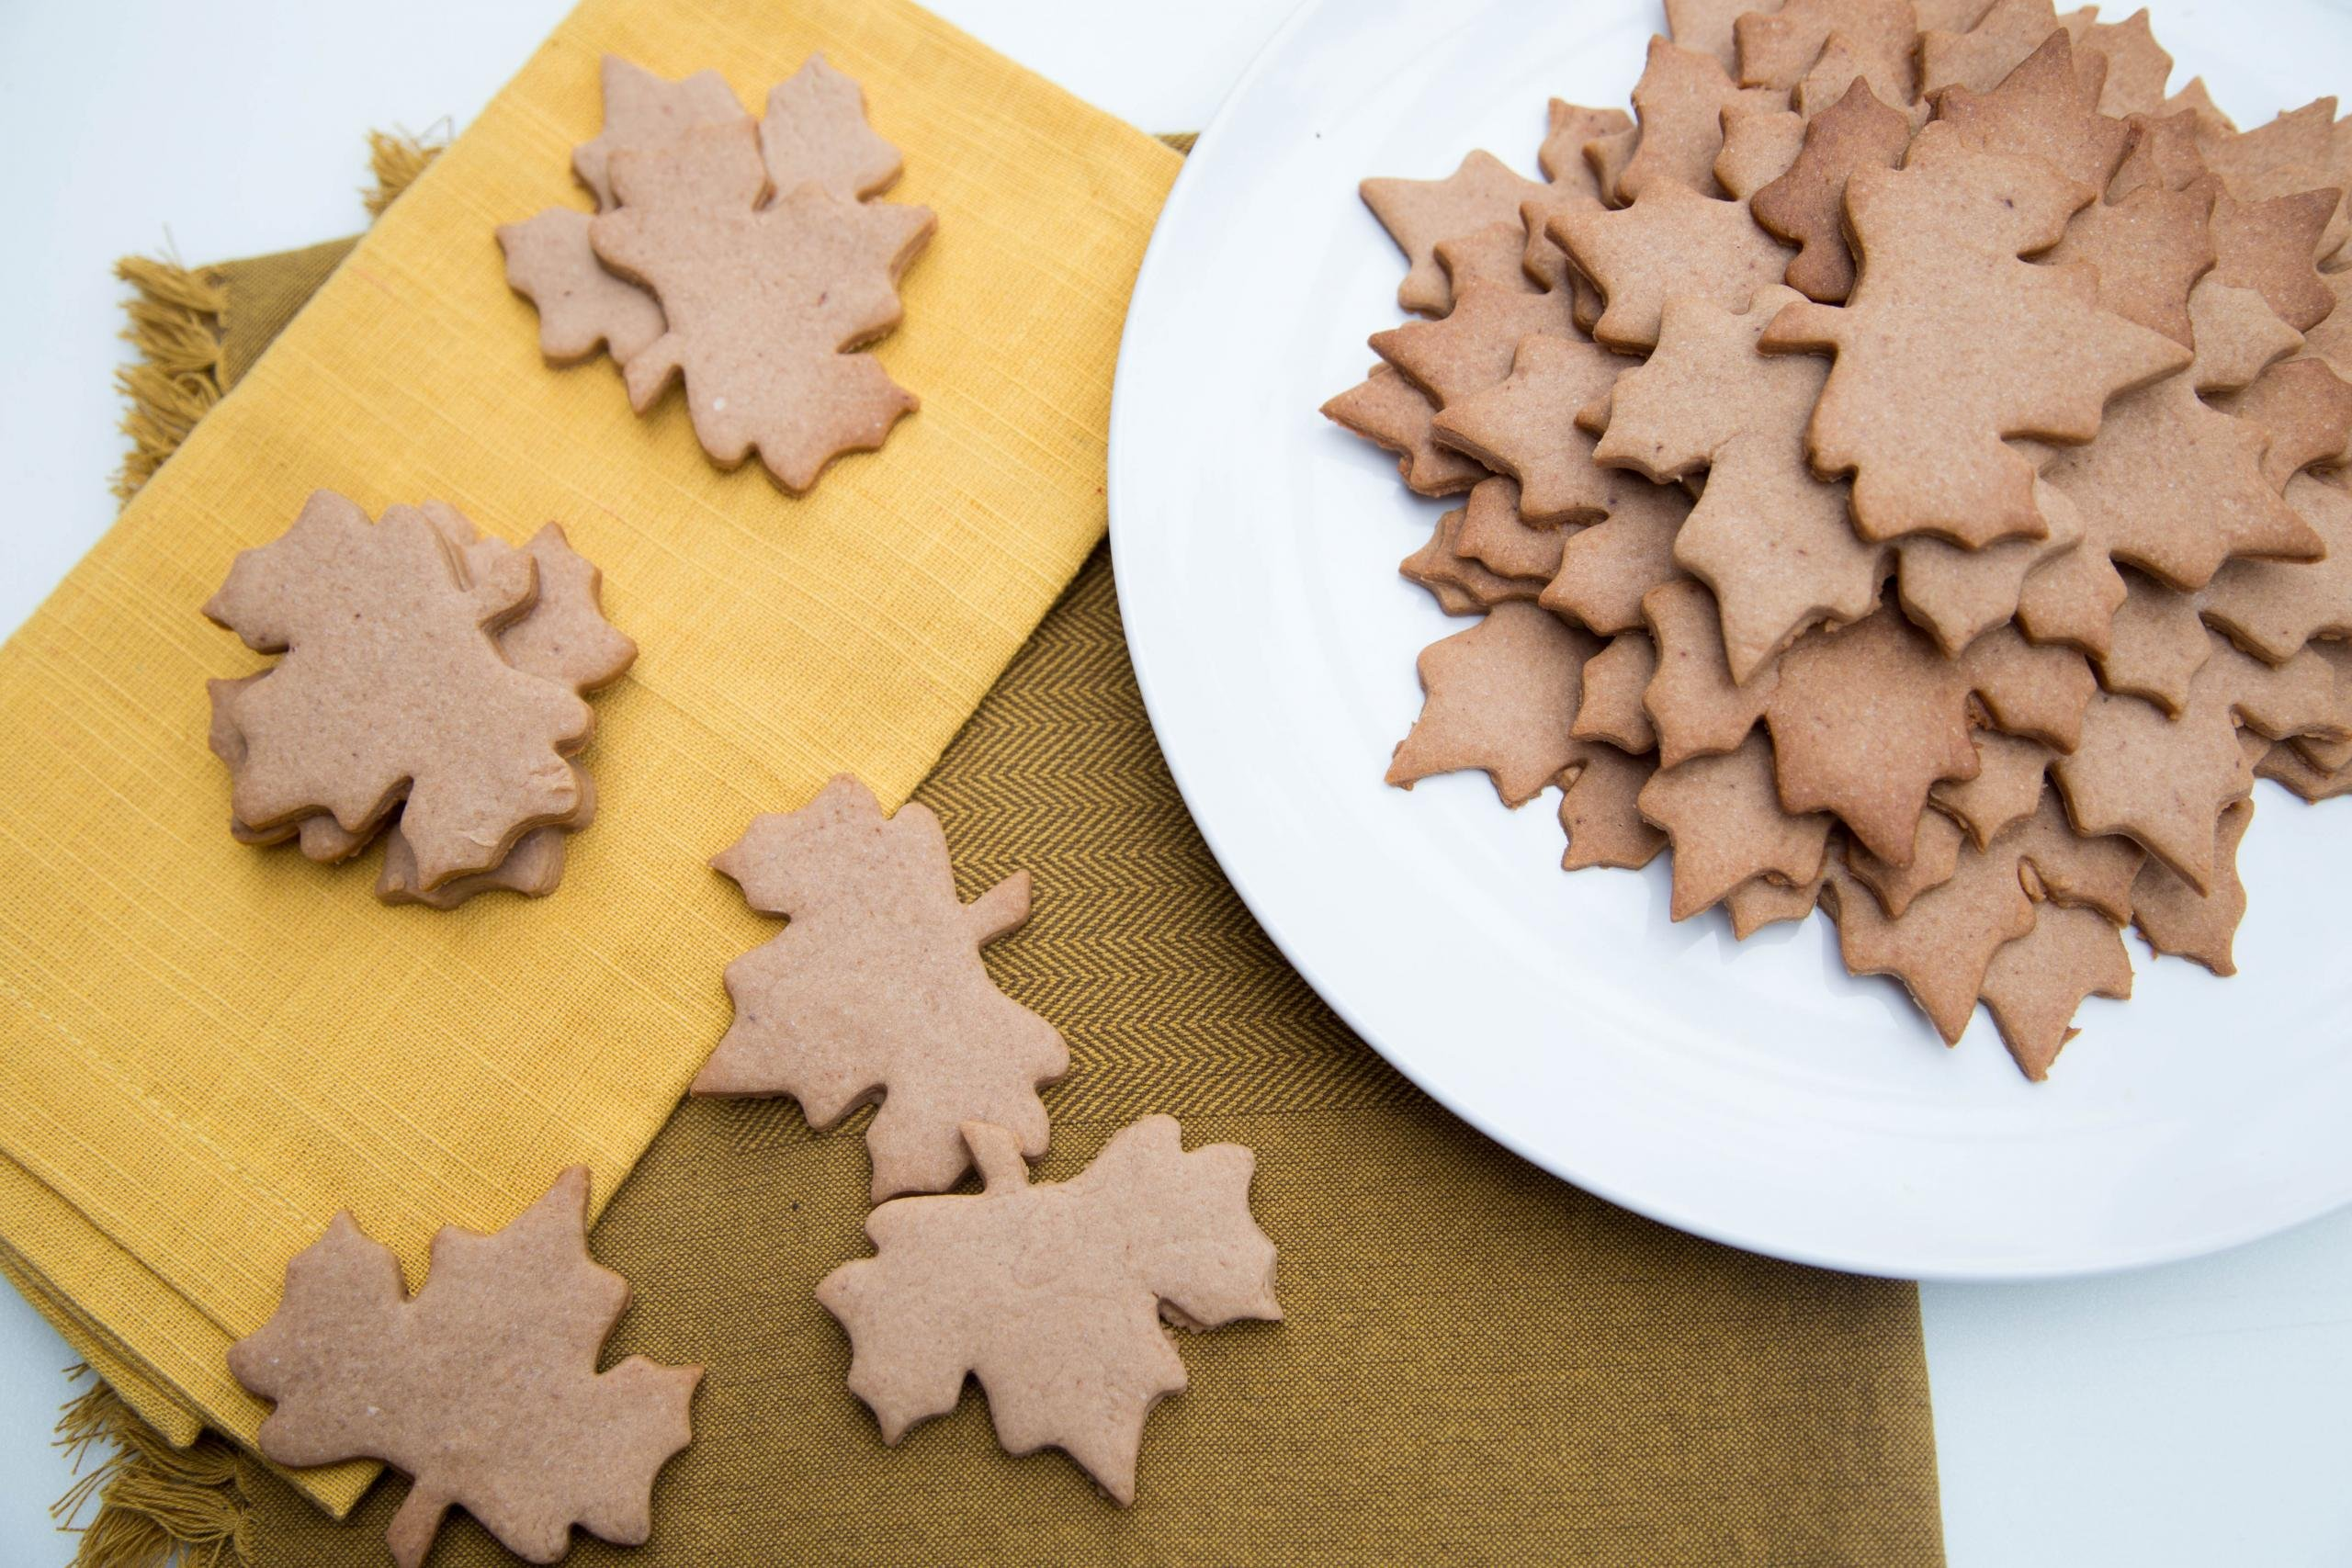 Leaf shaped cookies on a plate and on table napkins